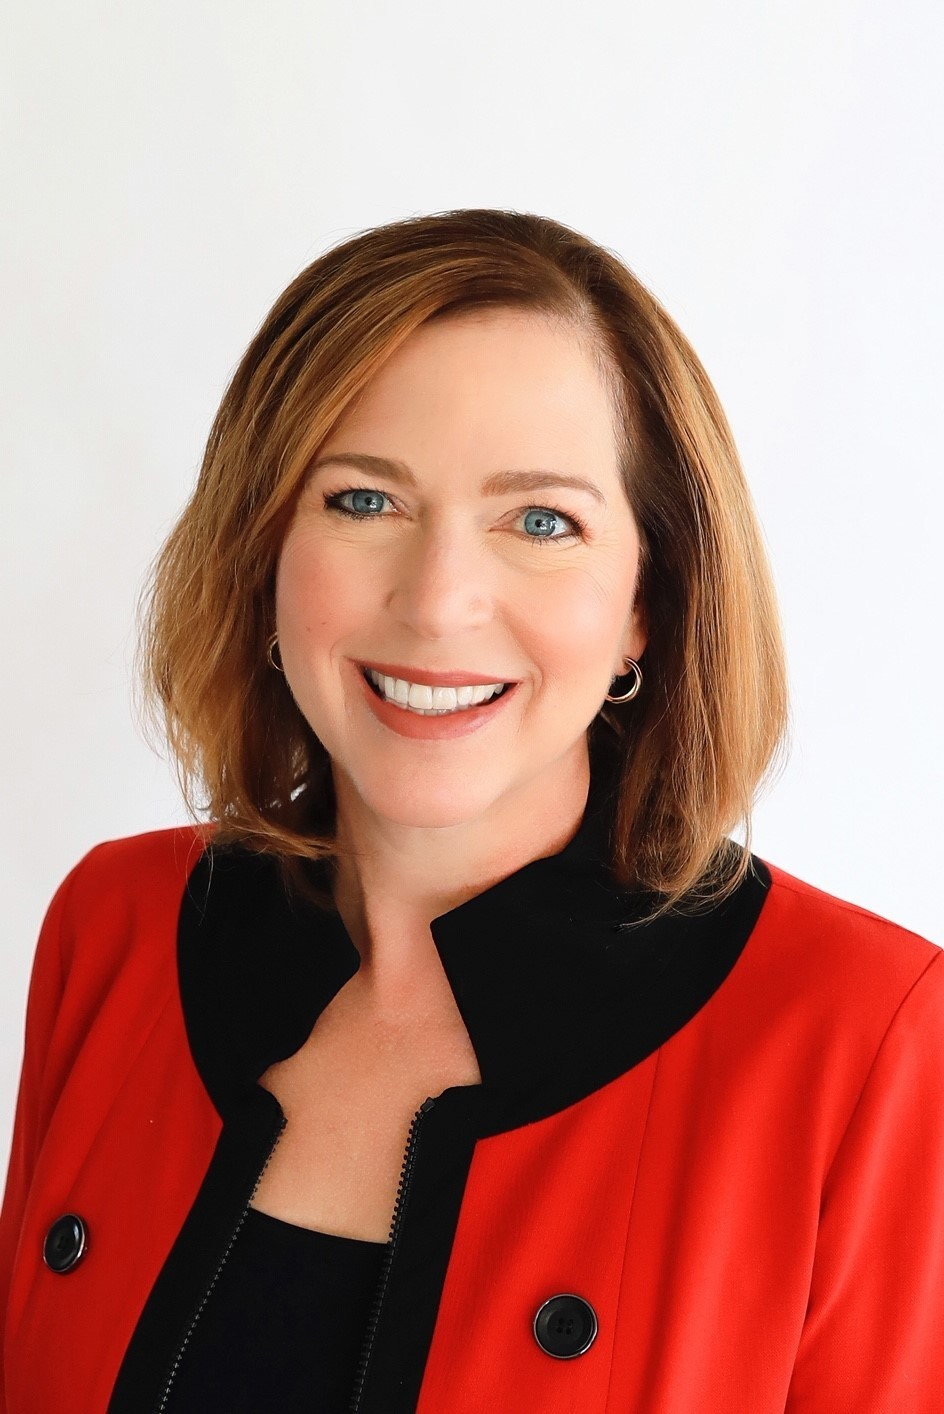 Jennifer Scanlon to become president and CEO of UL – the first woman to lead the 125-year-old organization.